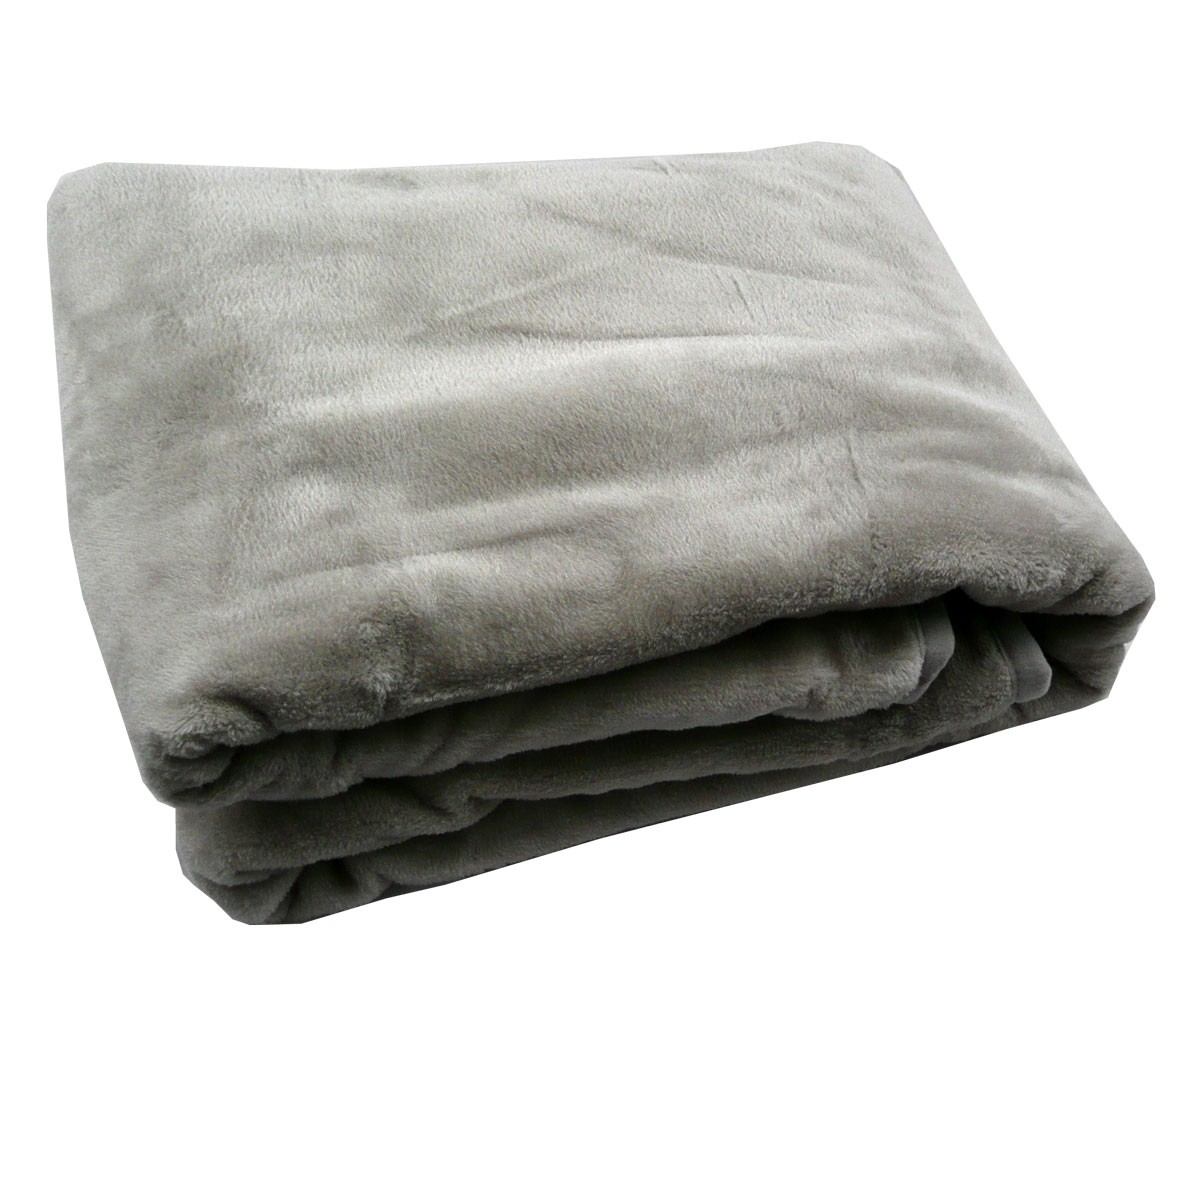 fleece decke kuscheldecke flauschdecke grau 150x200cm ebay. Black Bedroom Furniture Sets. Home Design Ideas